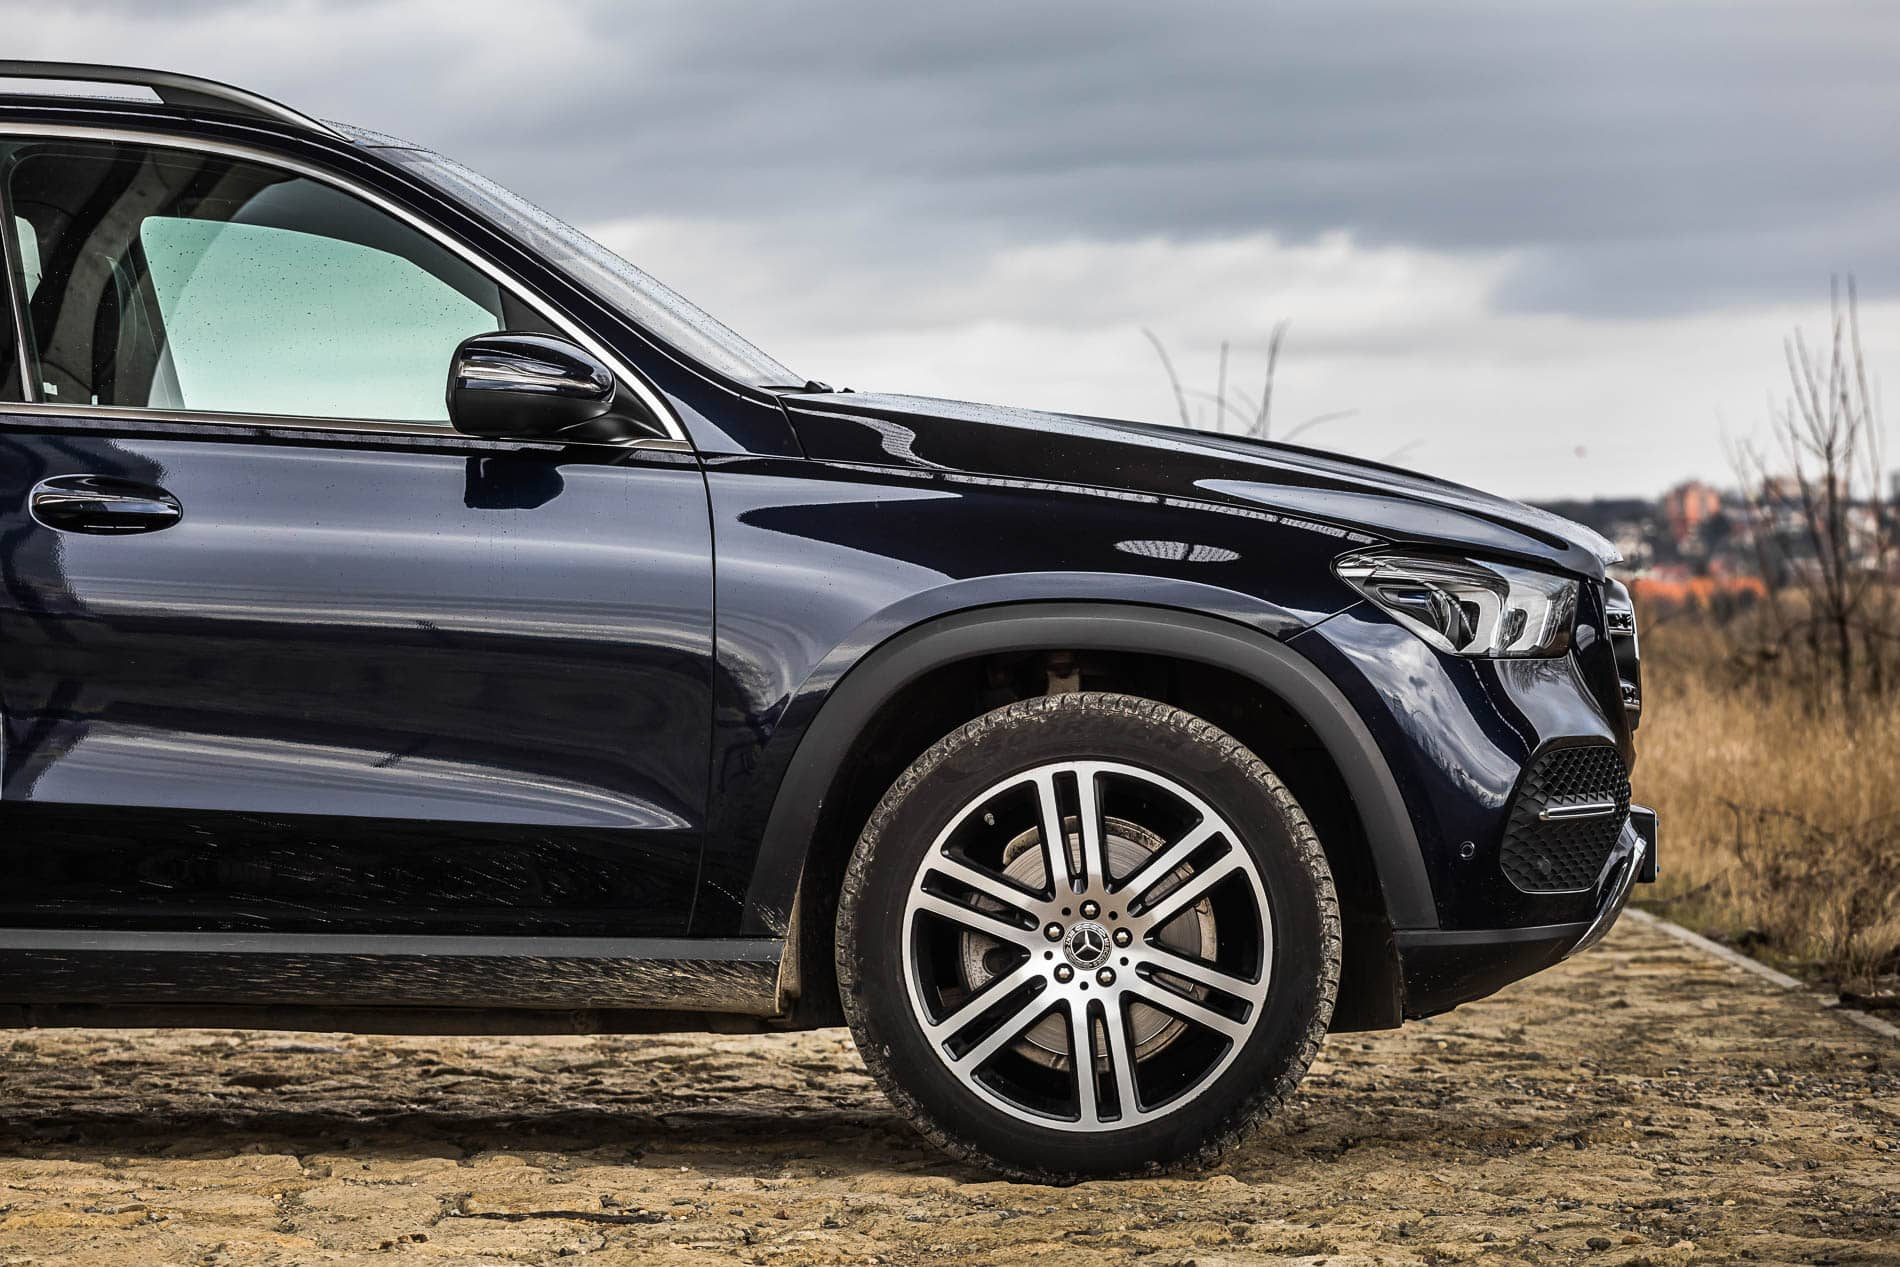 aud q7 vs mercedes gle (19)